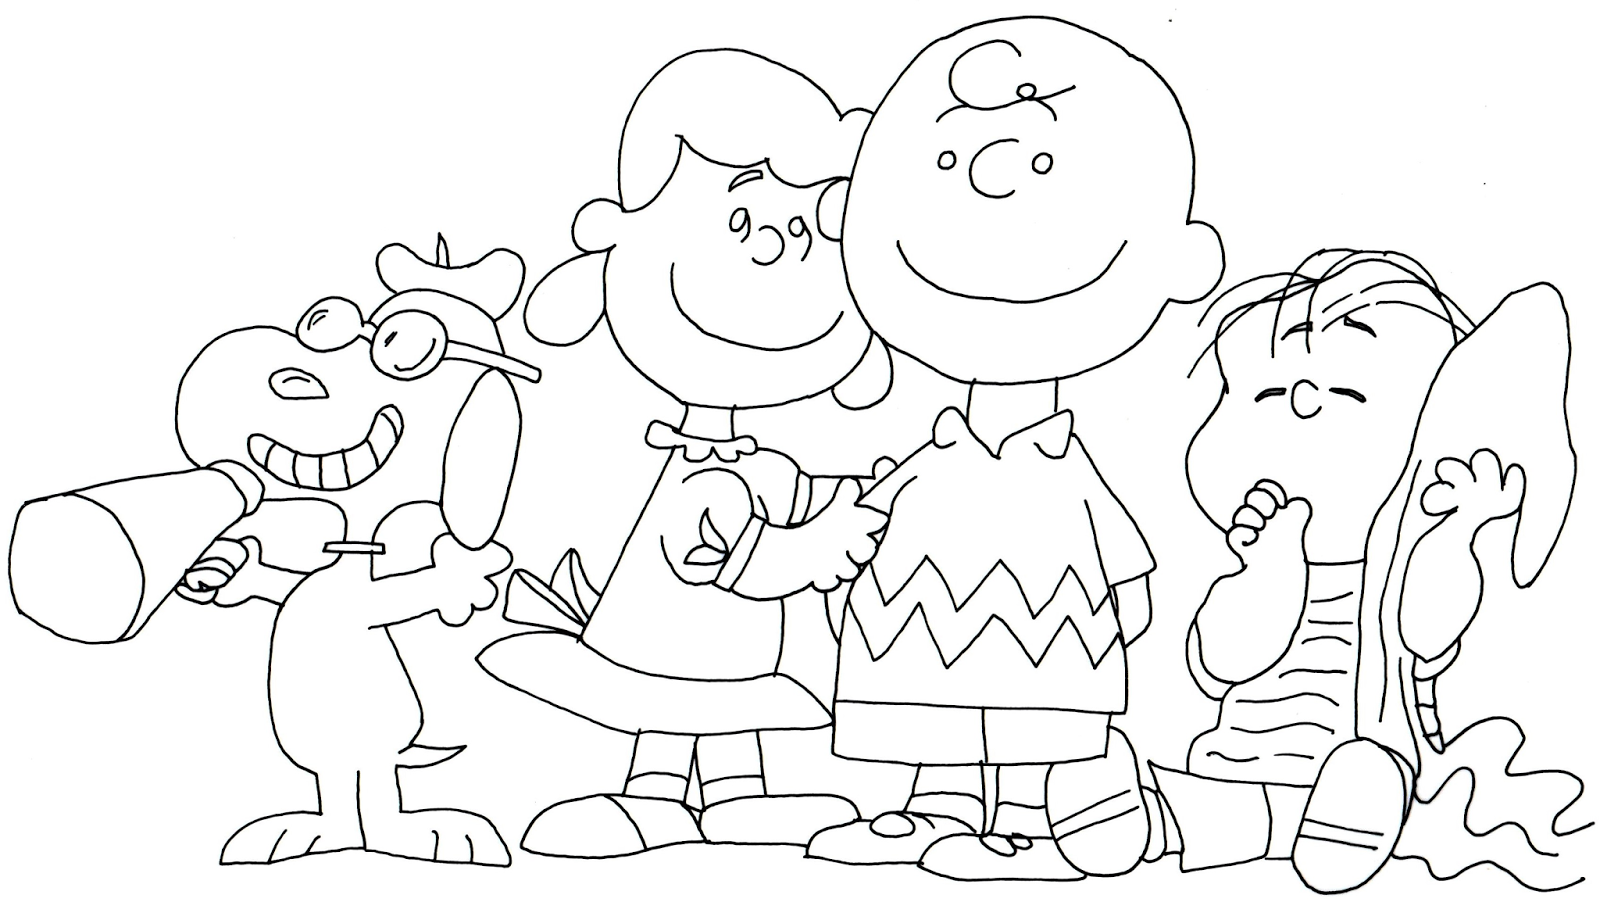 peanuts free coloring pages - photo#29